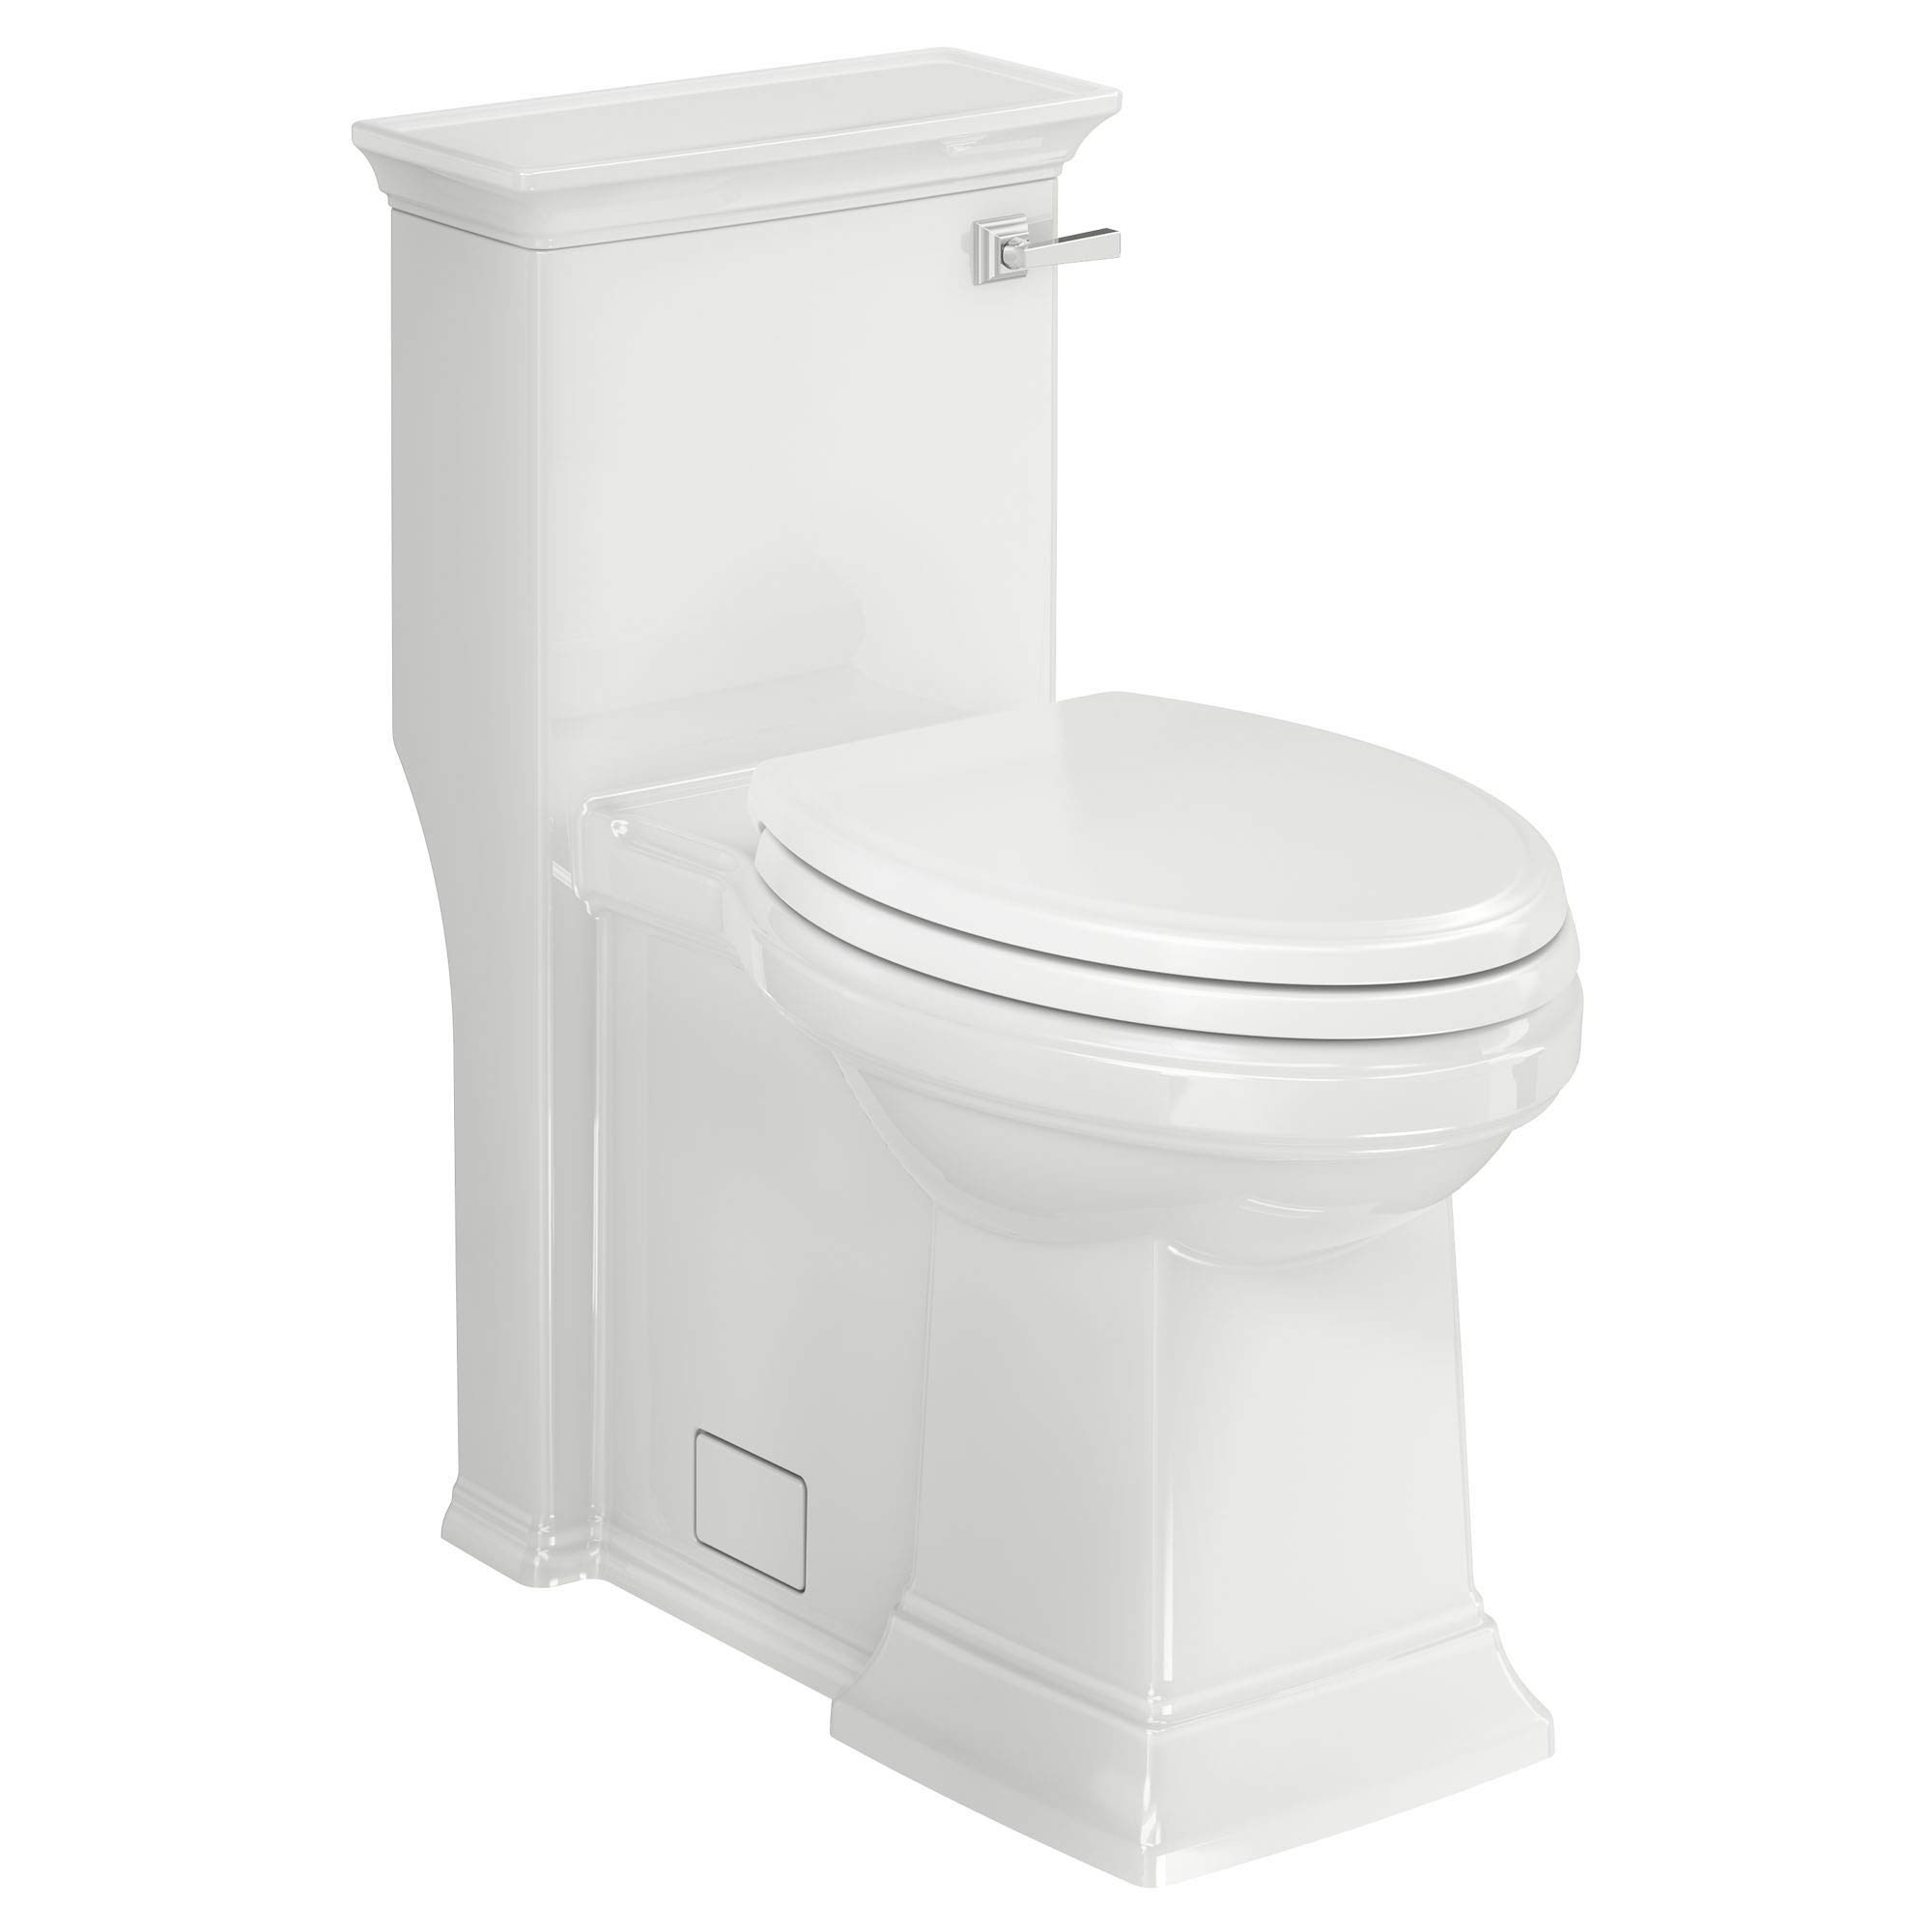 American Standard 2851A105.020 Town Square S Right Height Elongated One-Piece Toilet with Seat, White